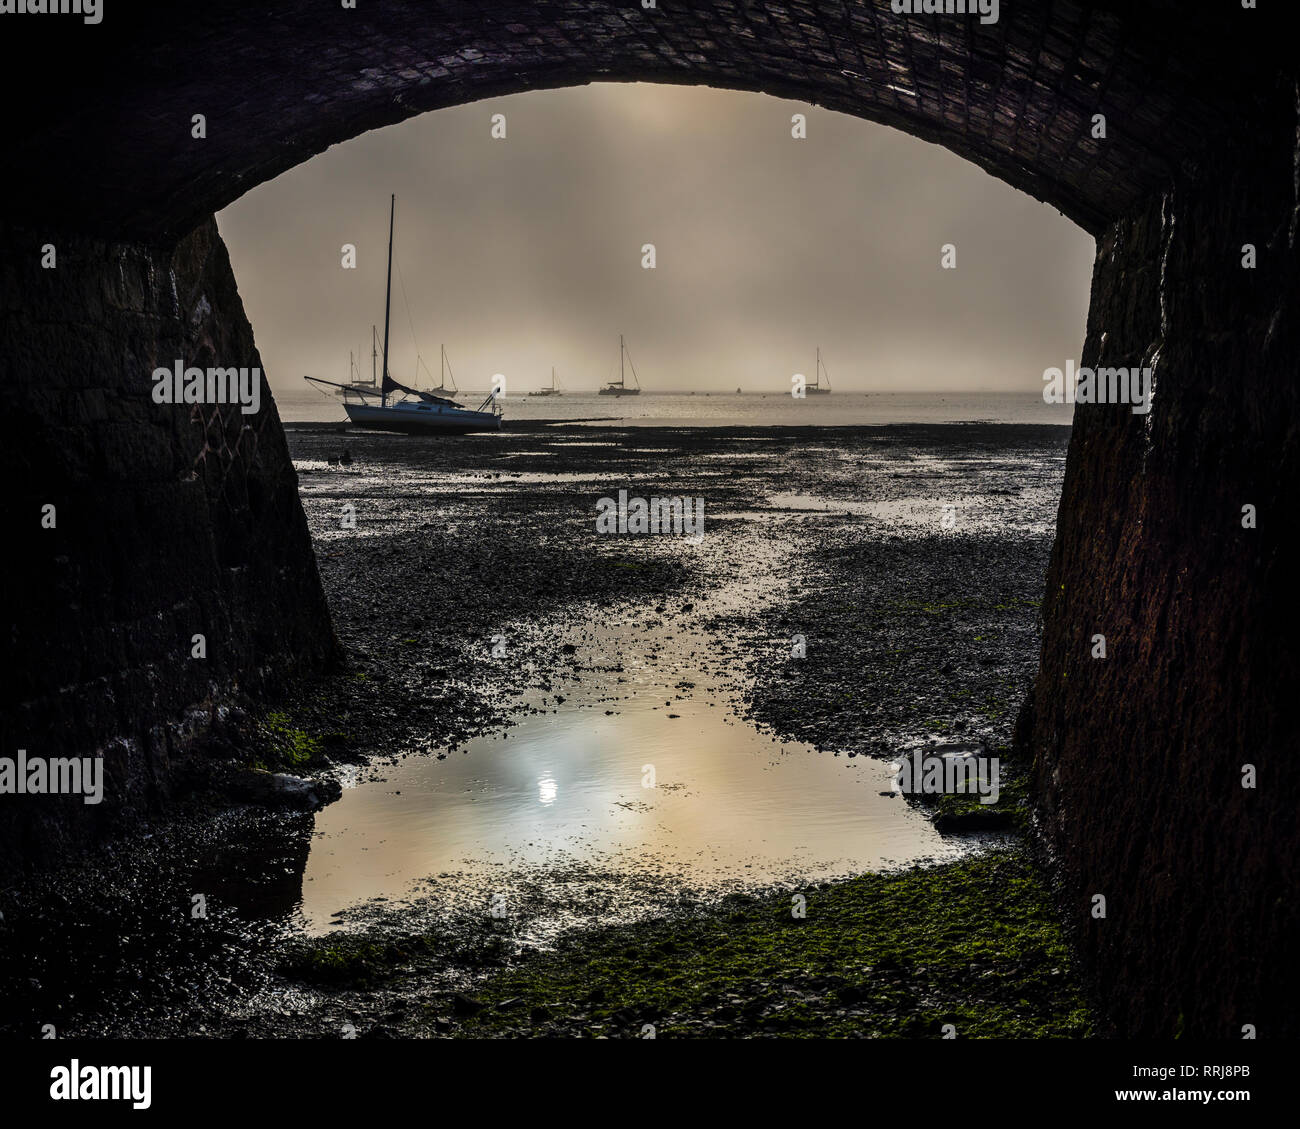 Boats on the Exe estuary in heavy fog viewed through an arch under the Exmouth to Penzance railway line, Starcross, Devon, England, United Kingdom - Stock Image